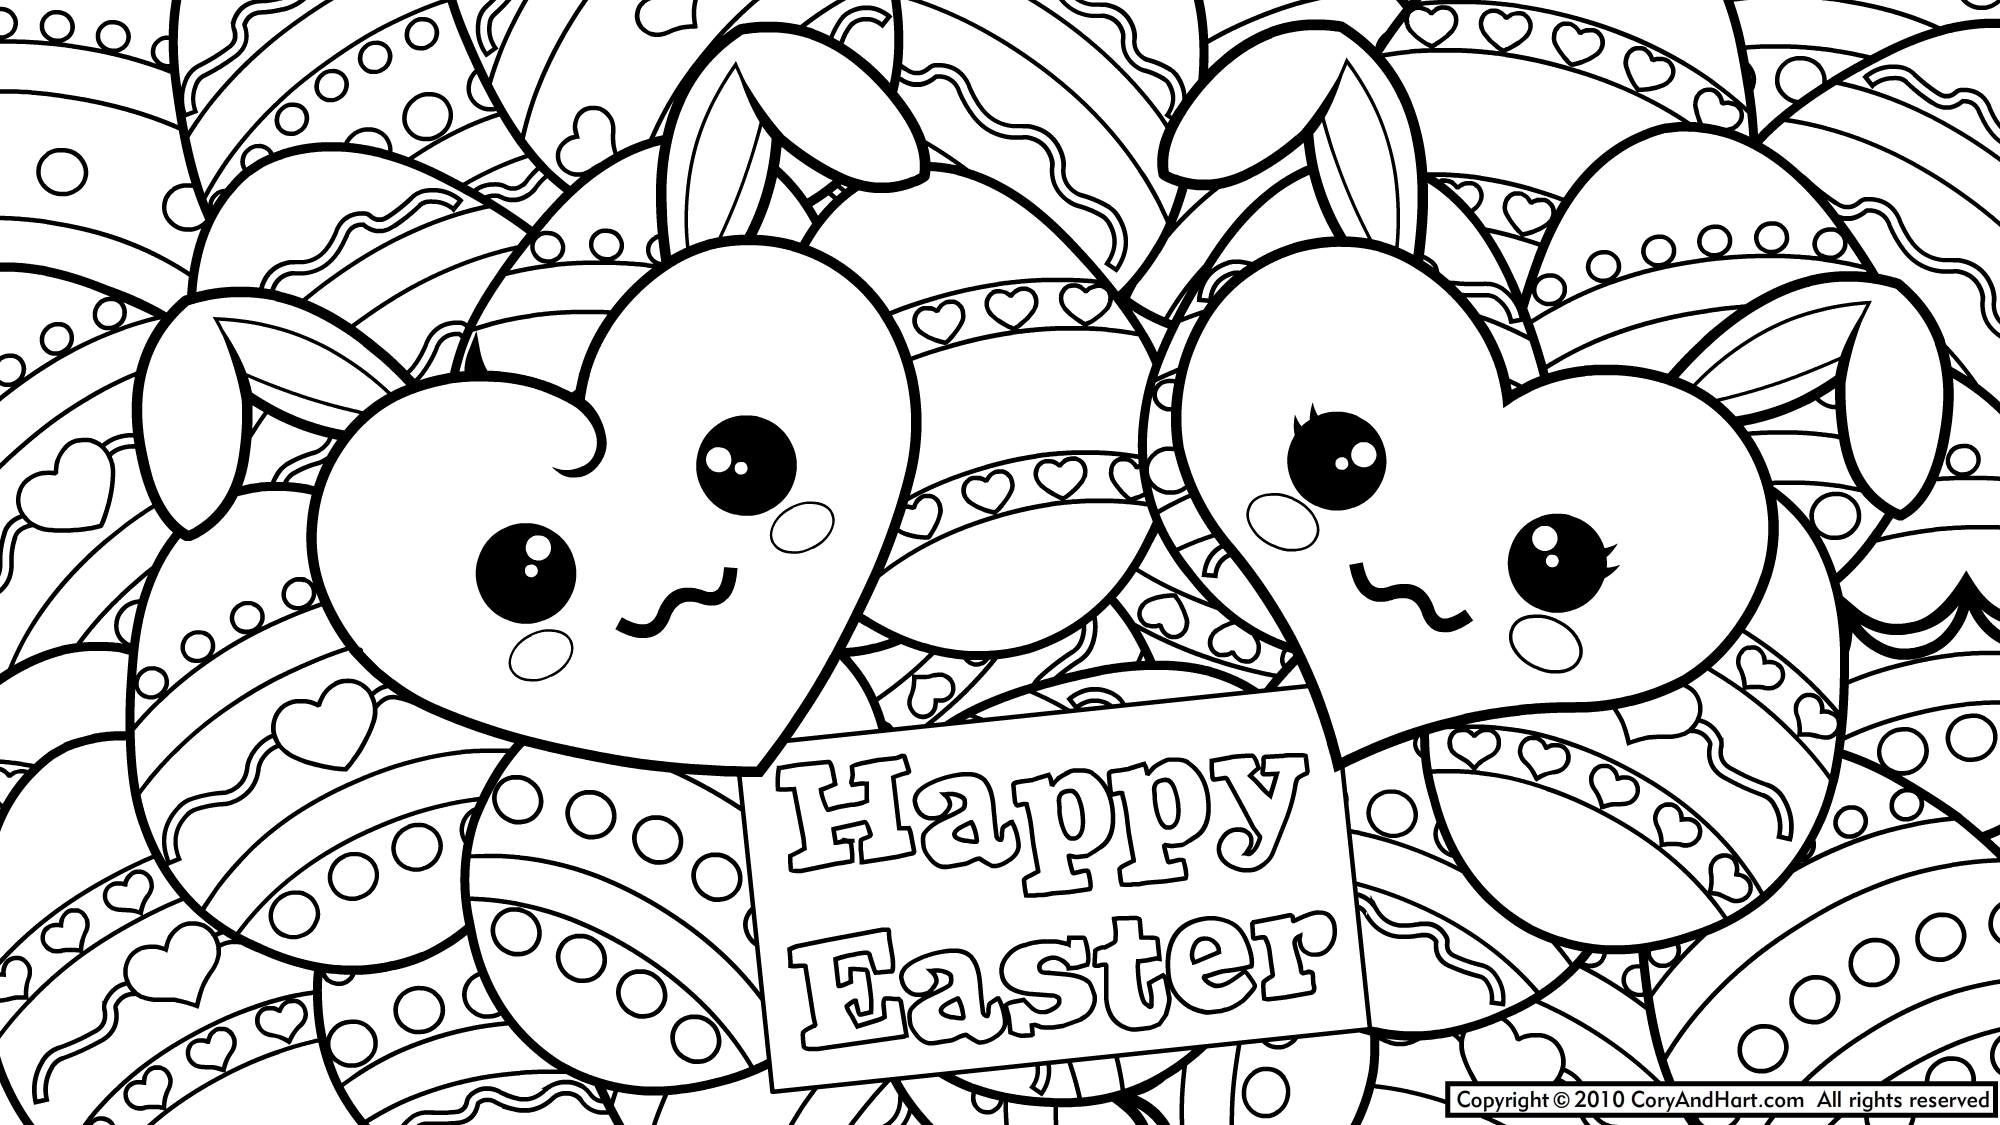 Easter Coloring Page To Printprintablecoloring Pages